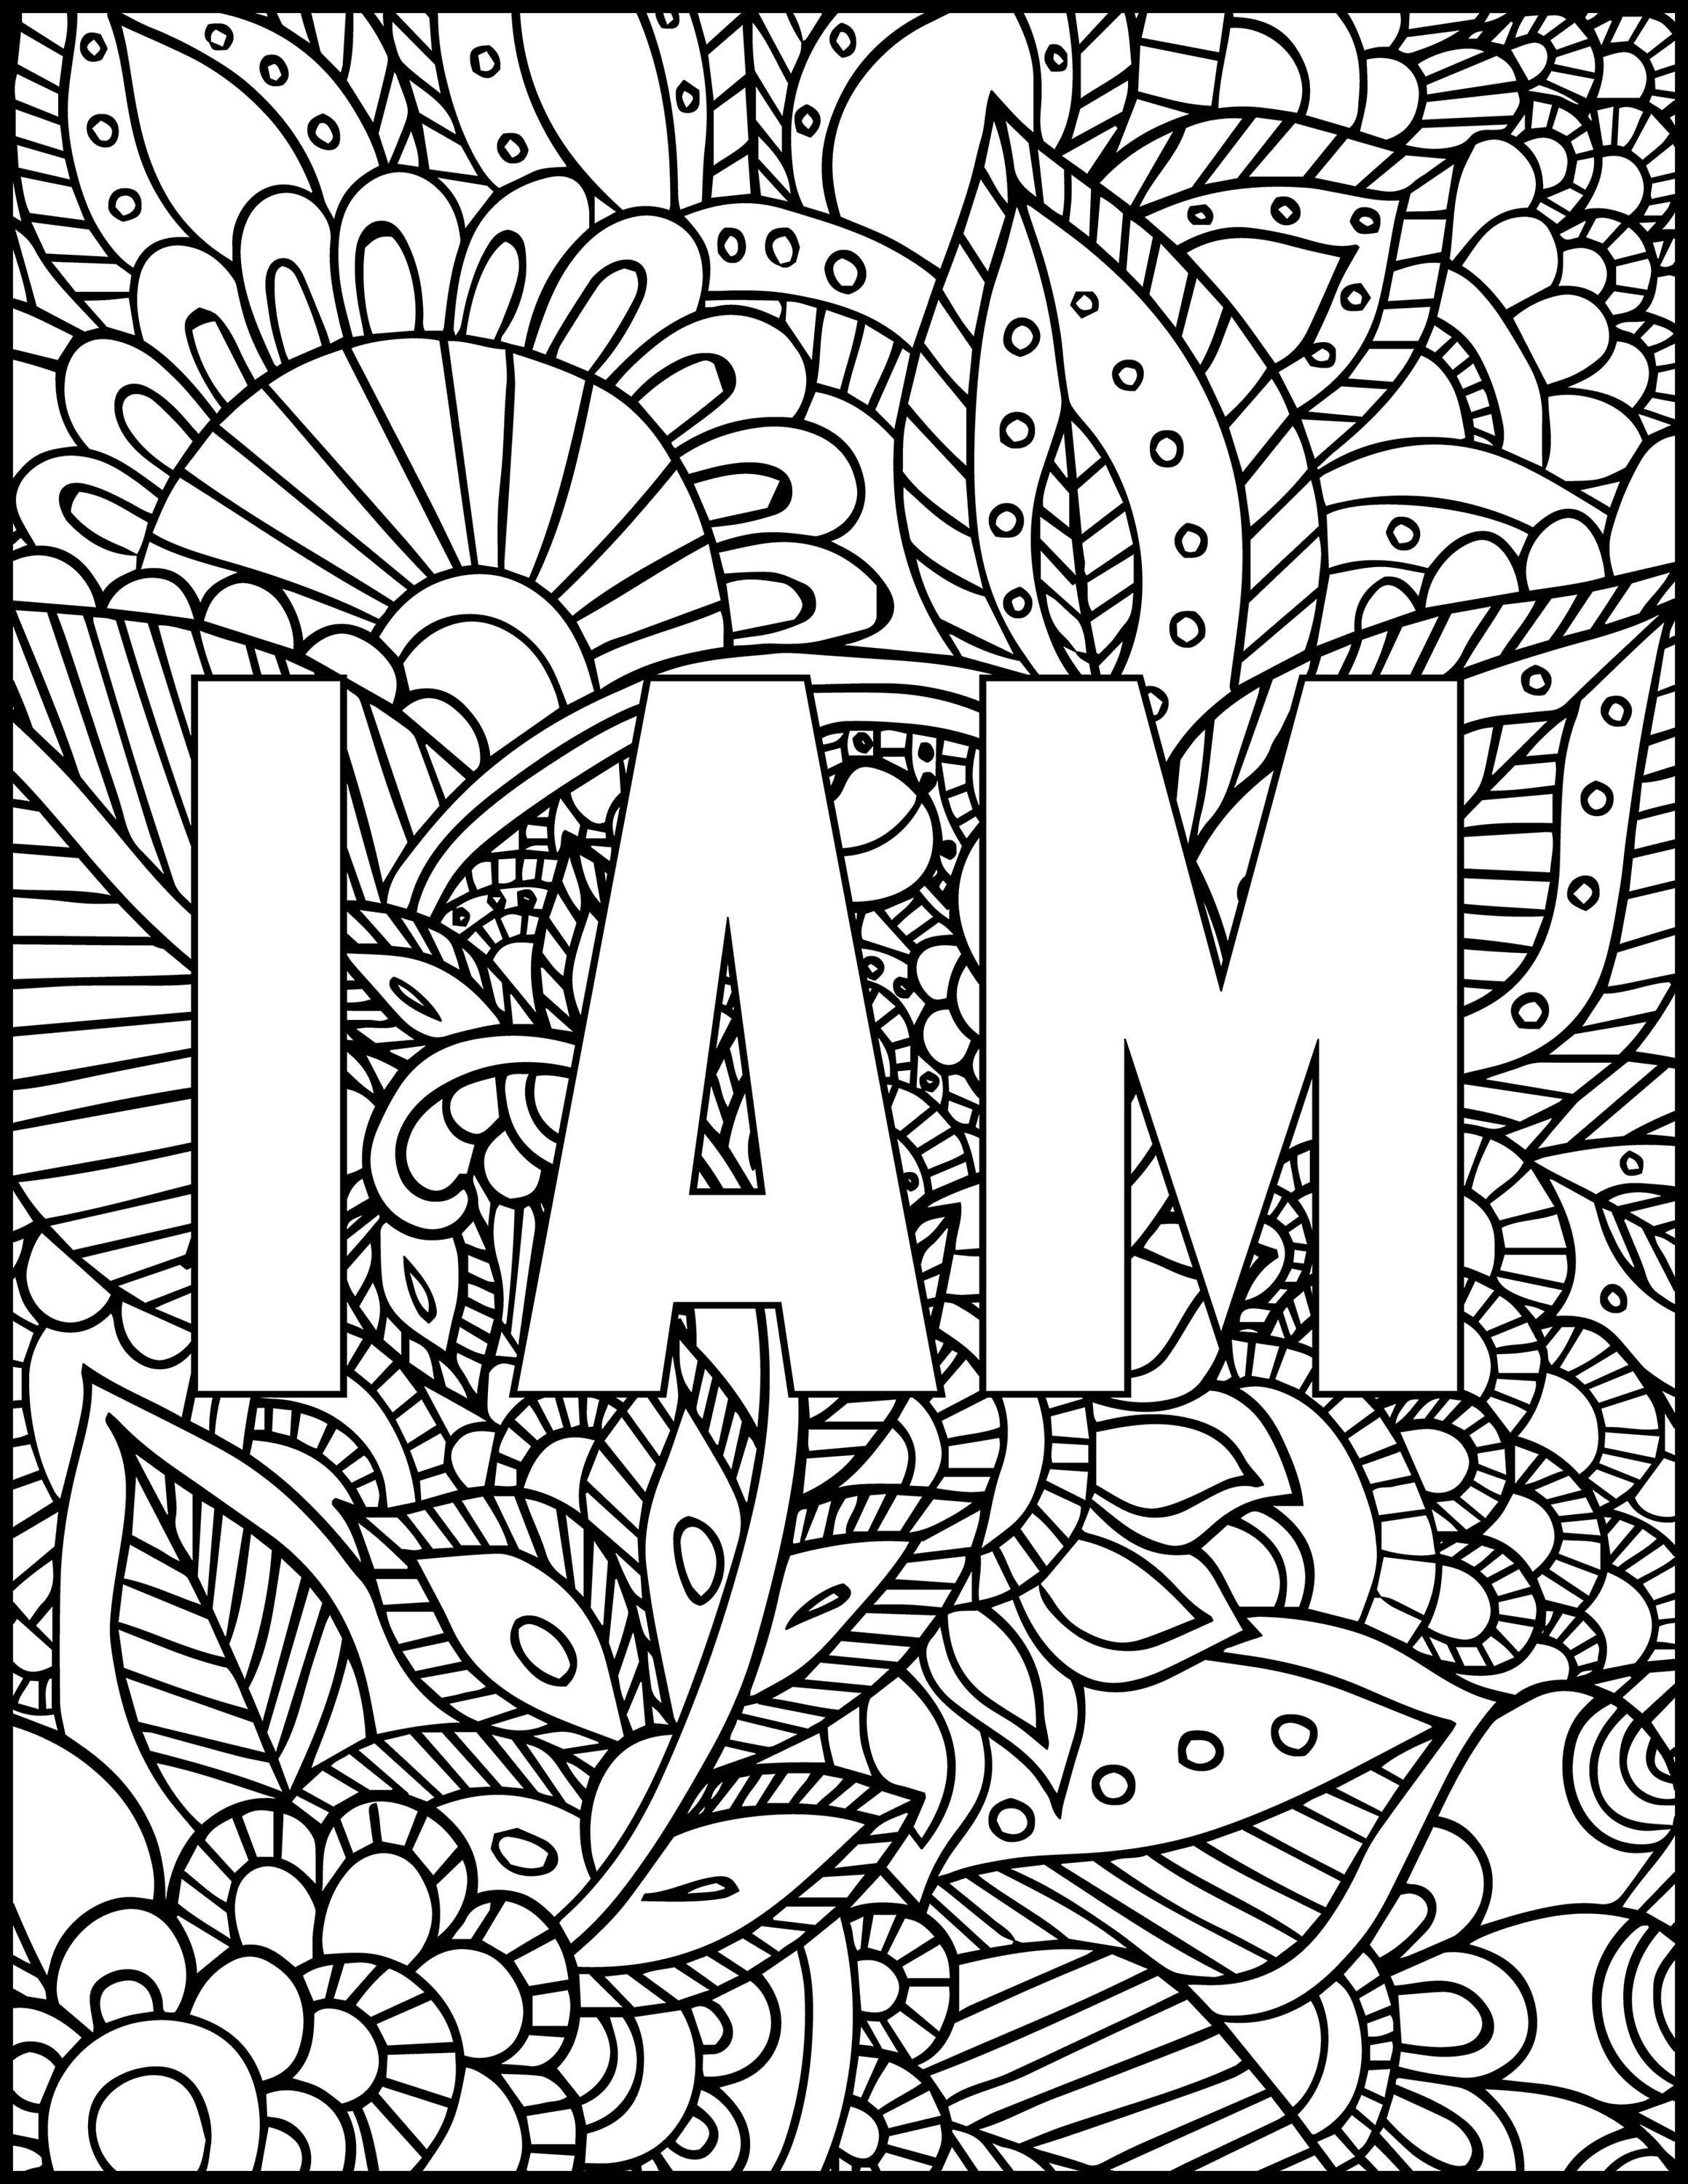 free coloring book pages free printable cinderella coloring pages for kids free coloring book pages